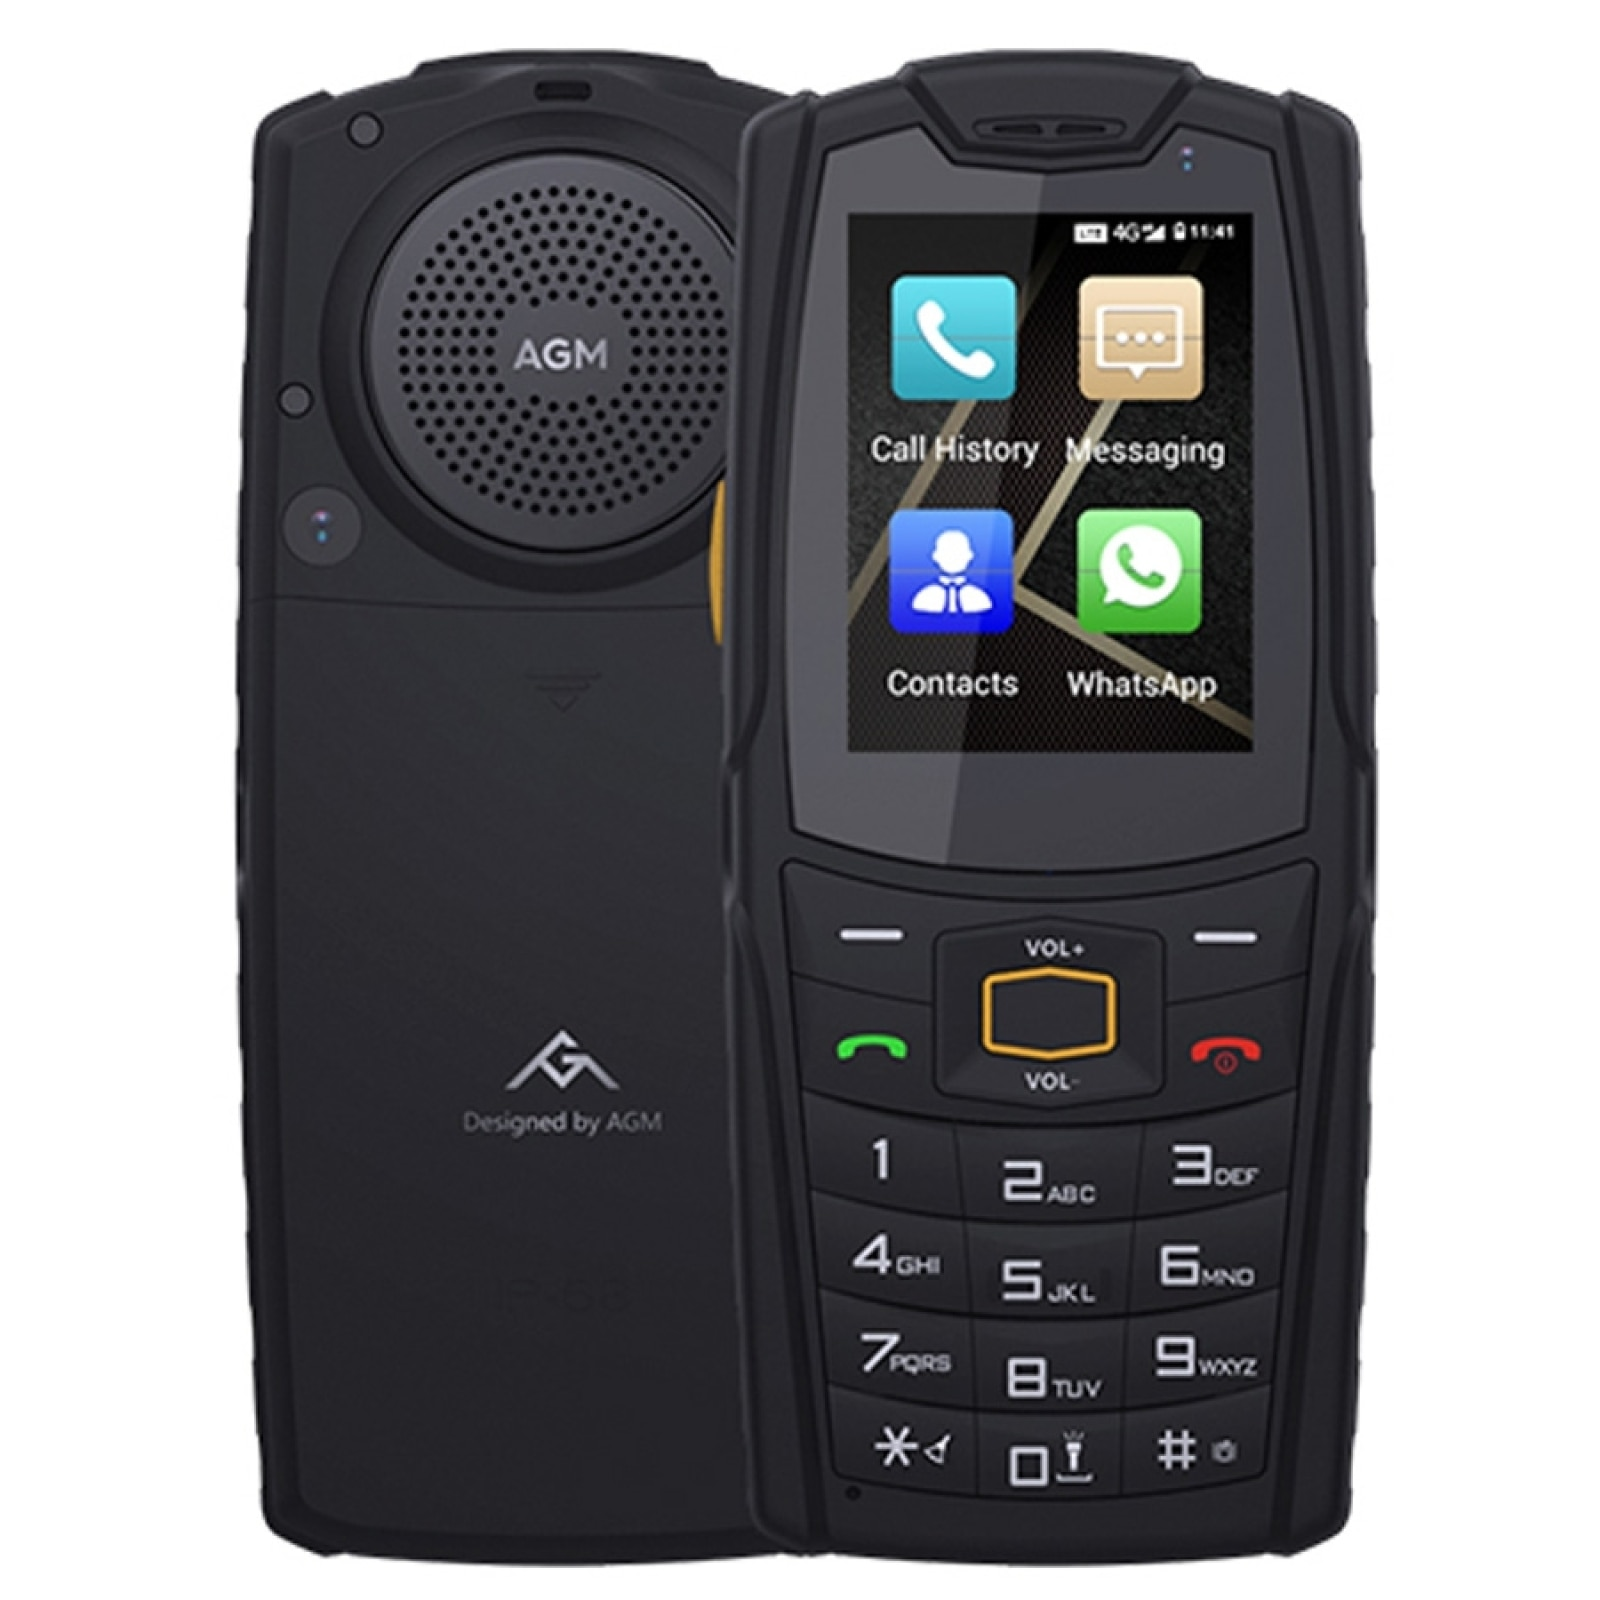 AGM M7 Rugged Phone 1GB+8GB Android 8.1 IP68 Waterproof Mobile Phone 2.4